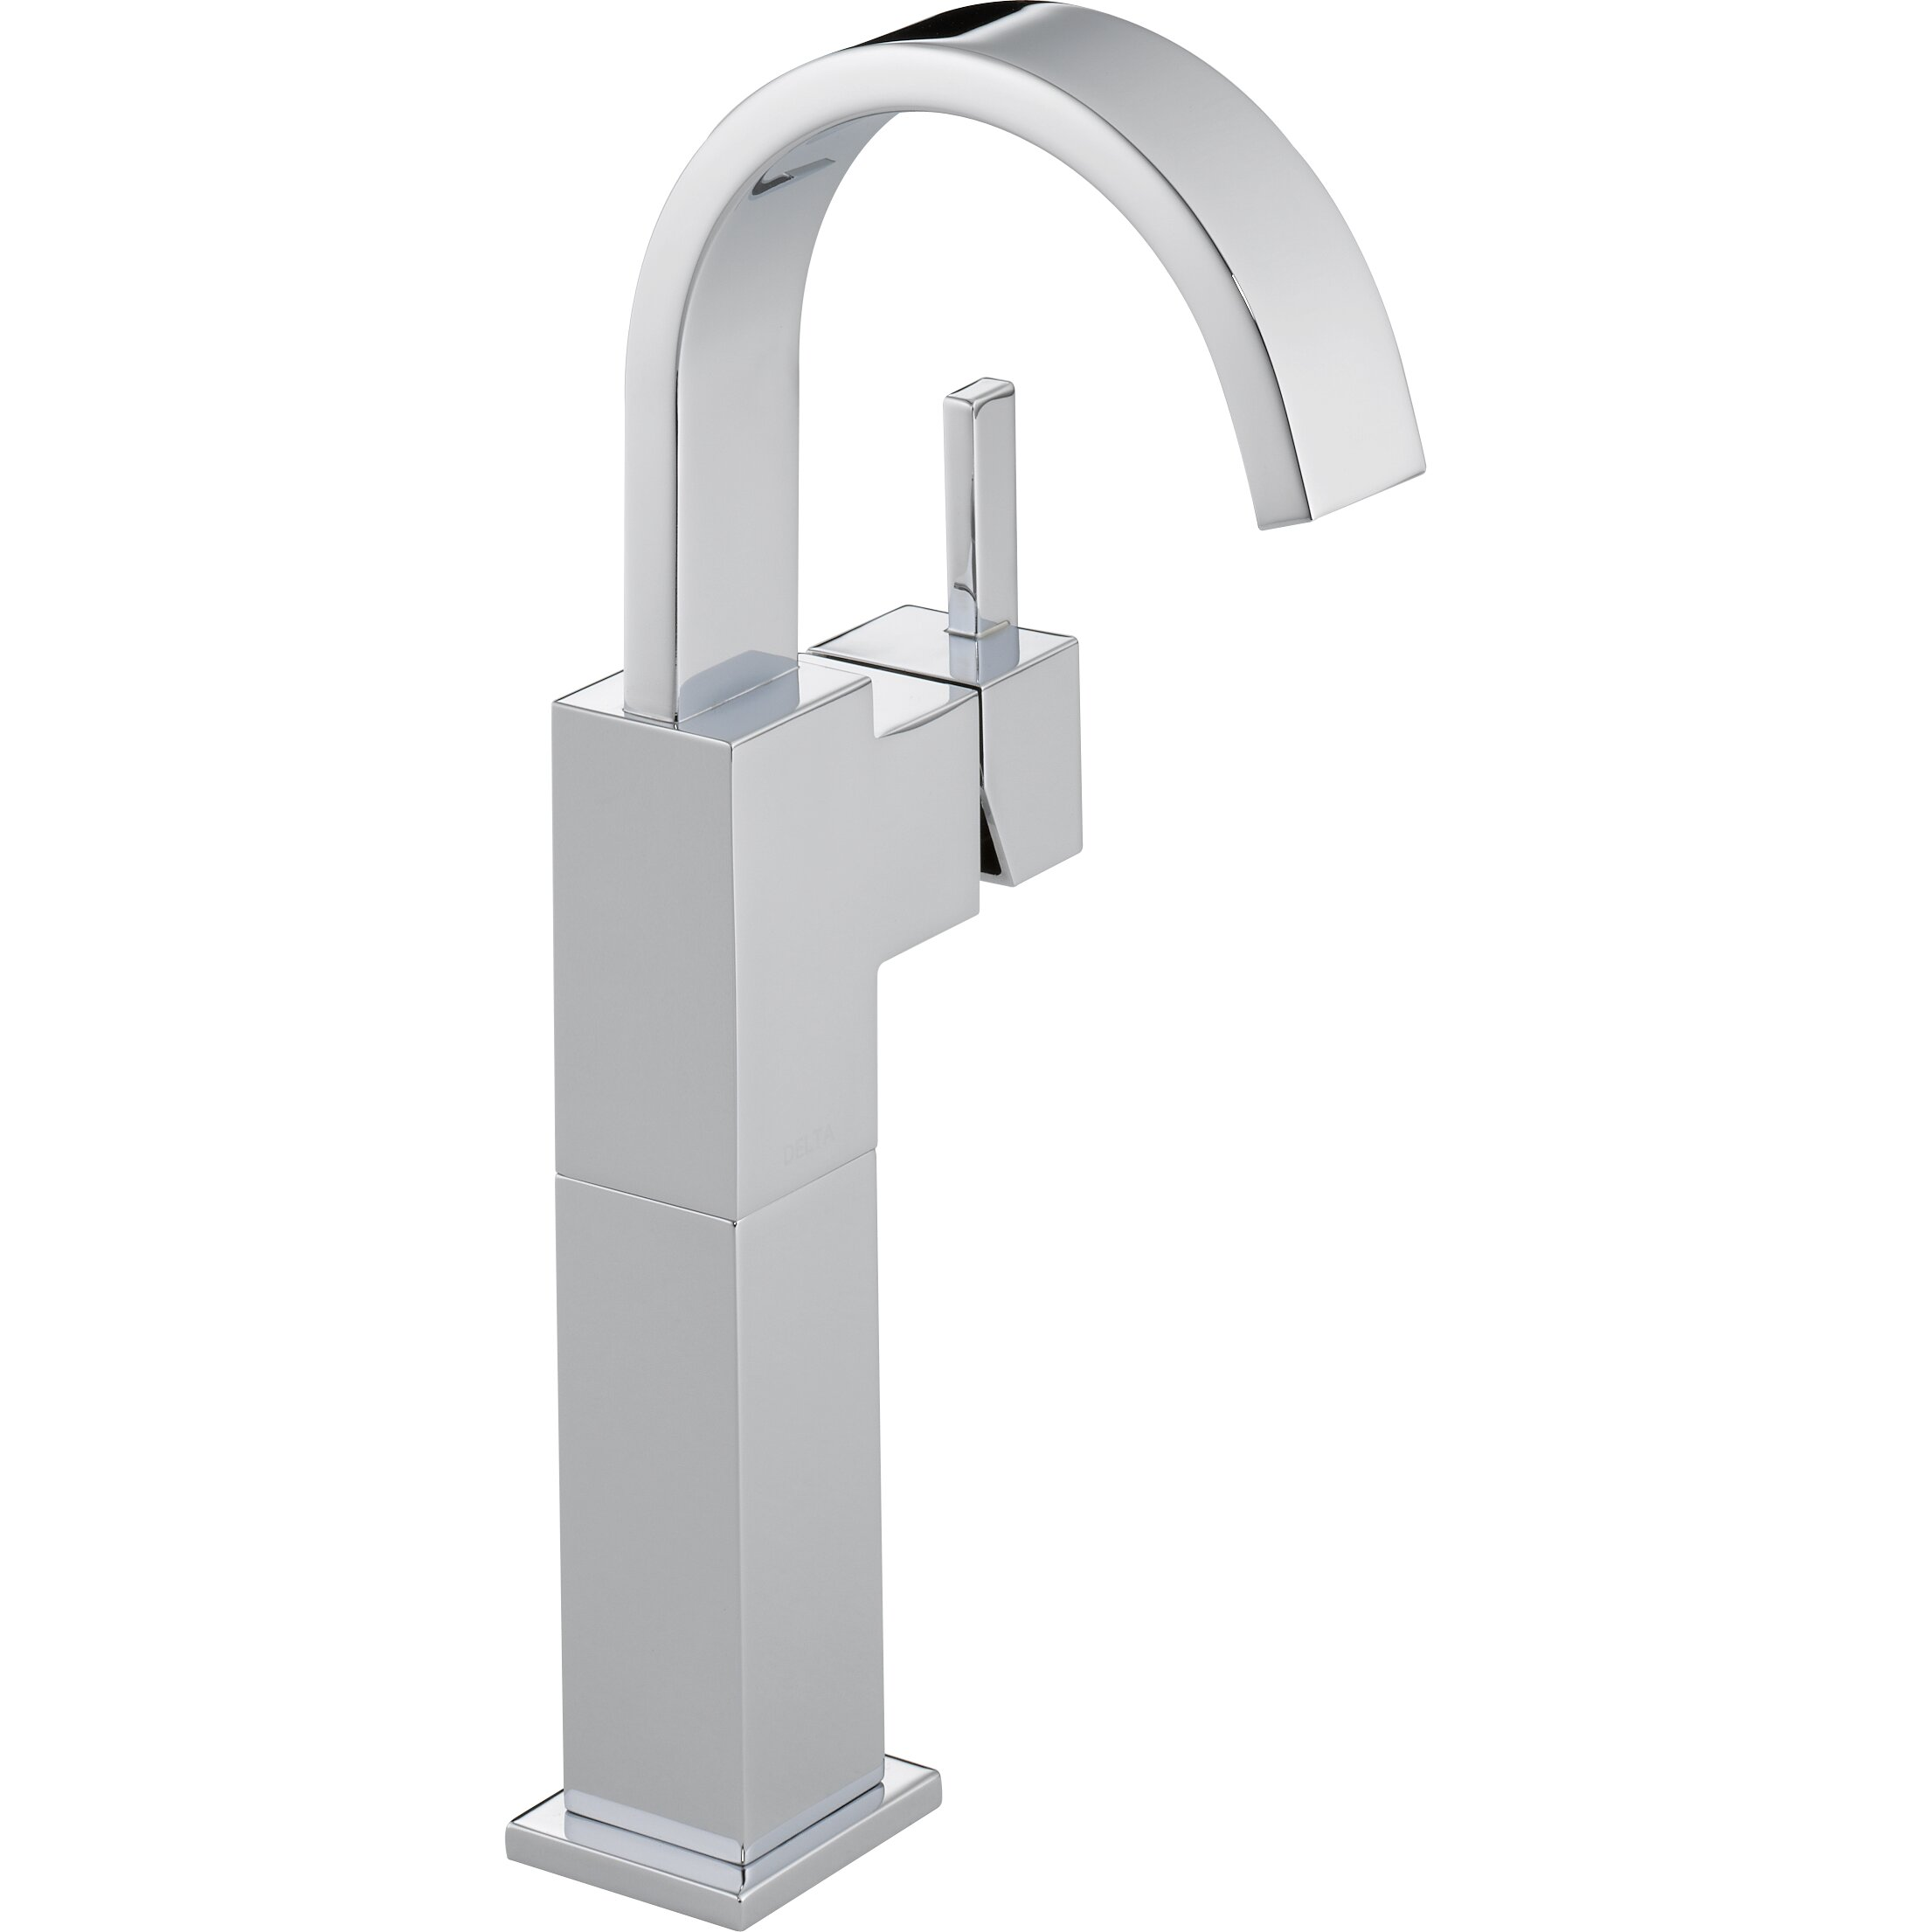 faucet seda pdx wayfair single reviews kraus bathroom hole improvement faucets home